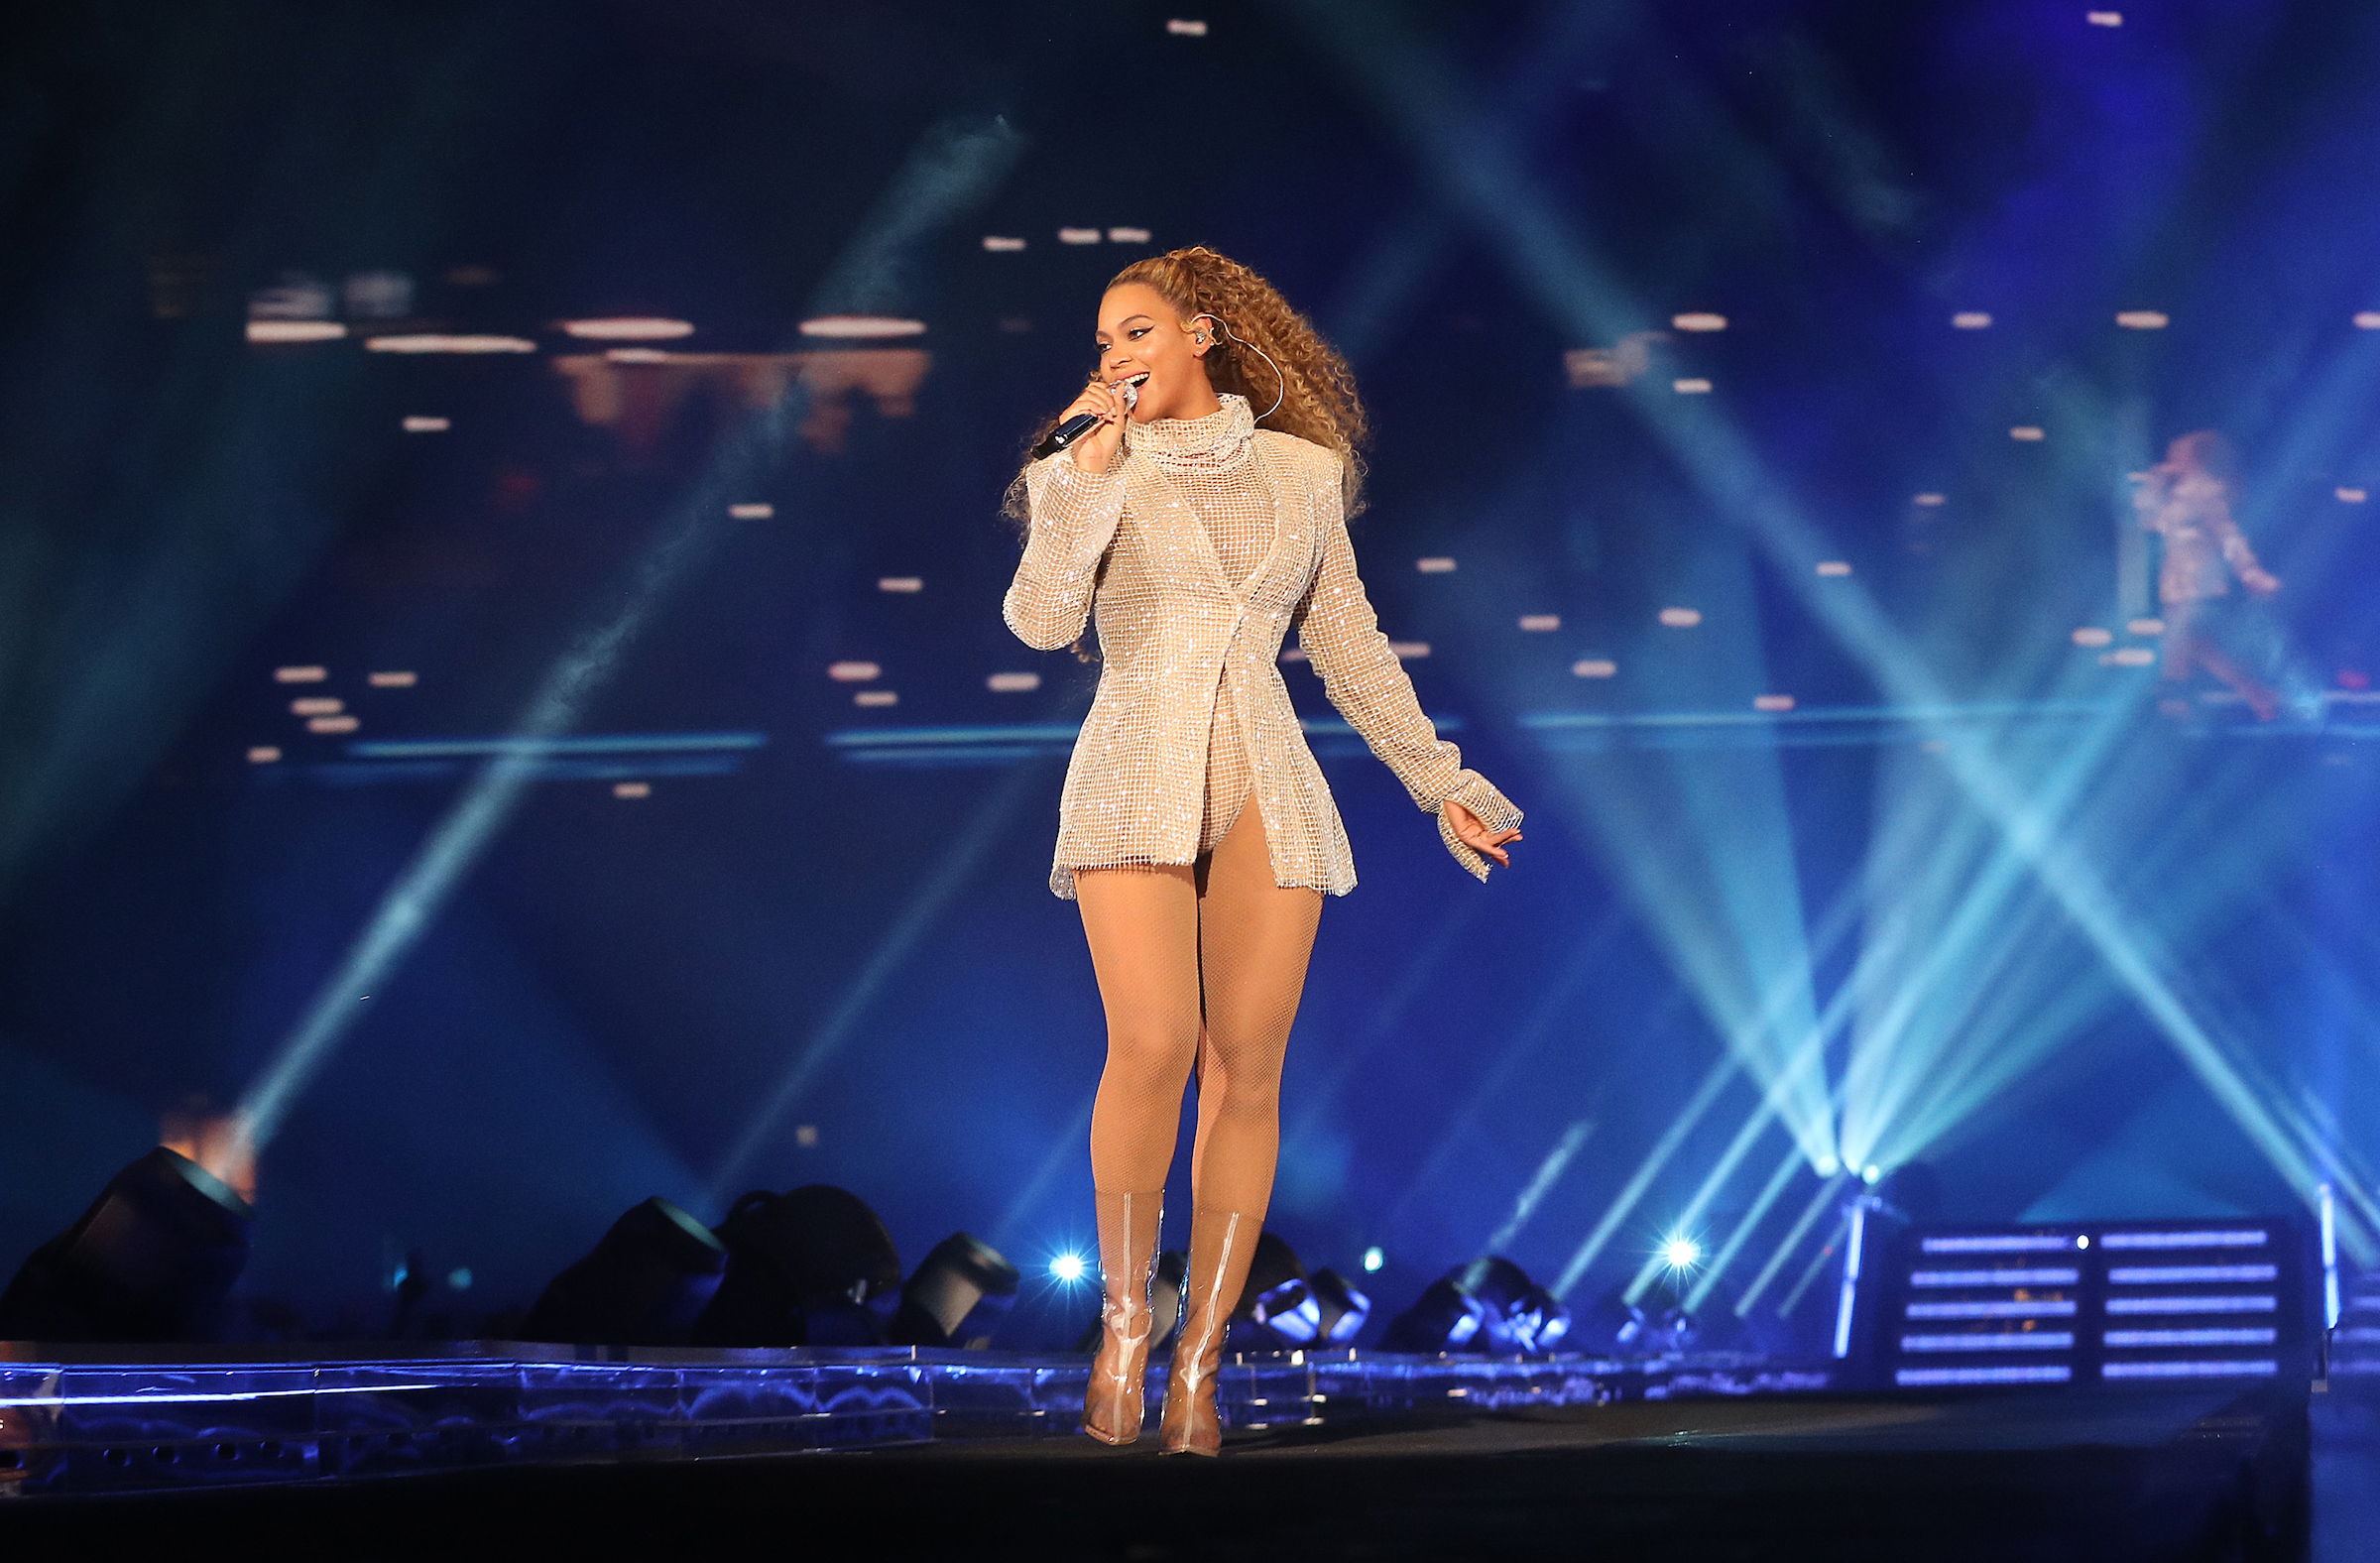 Beyonce performs on the opening night of the 'On The Run II' tour at Principality Stadium on June 6, 2018 in Cardiff, Wales, UK. (Photo by Robin Harper/Parkwood/PictureGroup)